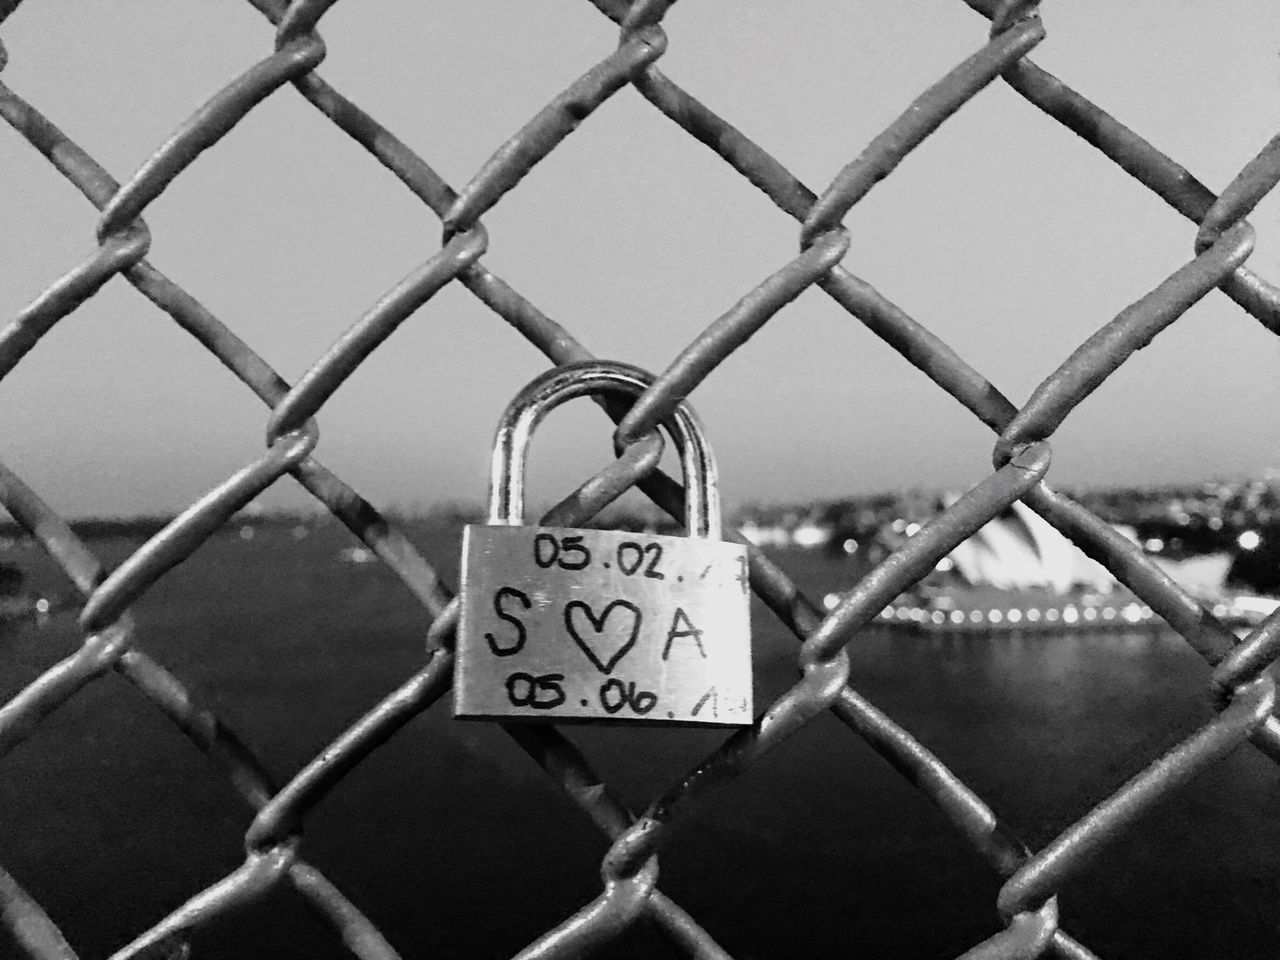 Security Protection Padlock Love Lock Love Safety Lock Metal Fence Railing Hope Chainlink Fence Safe Focus On Foreground Hope - Concept Trust Day Outdoors Belief